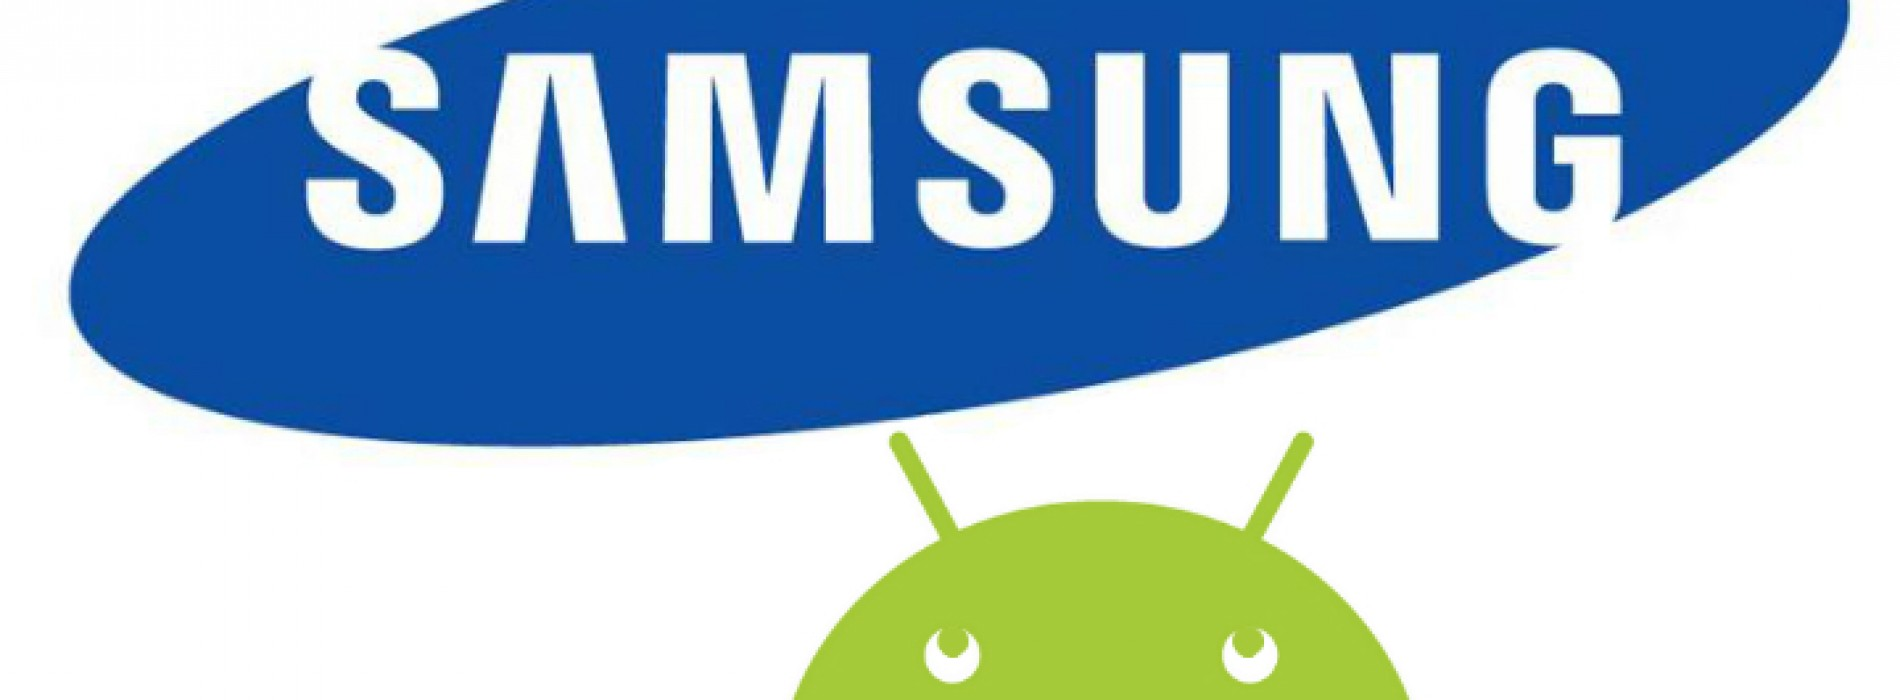 Is Google worried about Samsung?